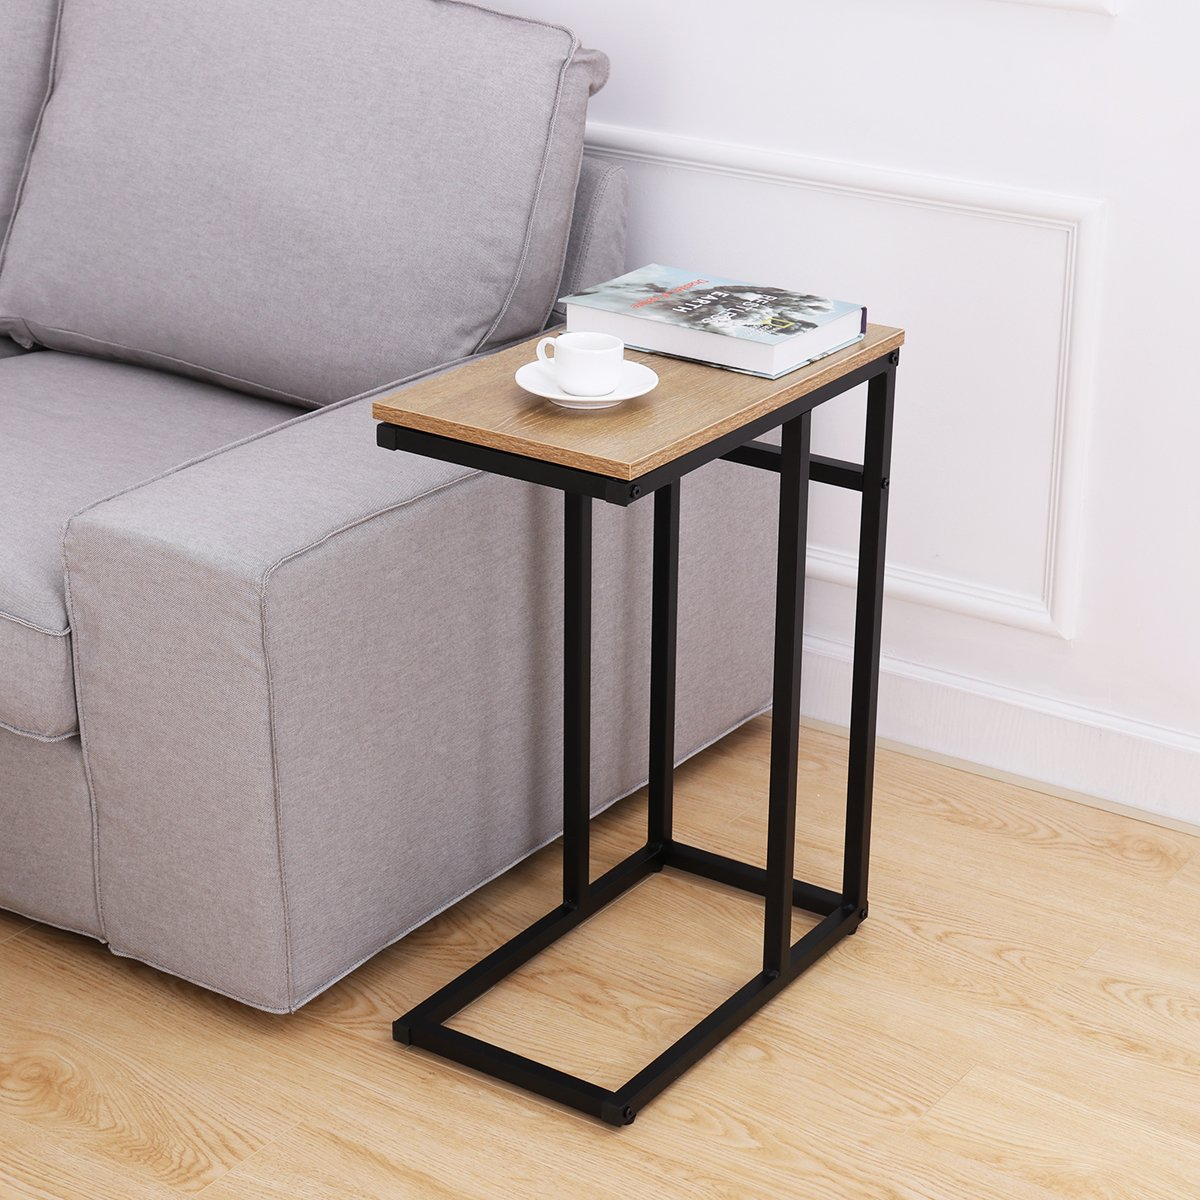 HOMEMAXS Sofa Side End Table C Table Small, Snack Table with Wood Finish and Steel Construction for Coffee, Snack, Tablet …